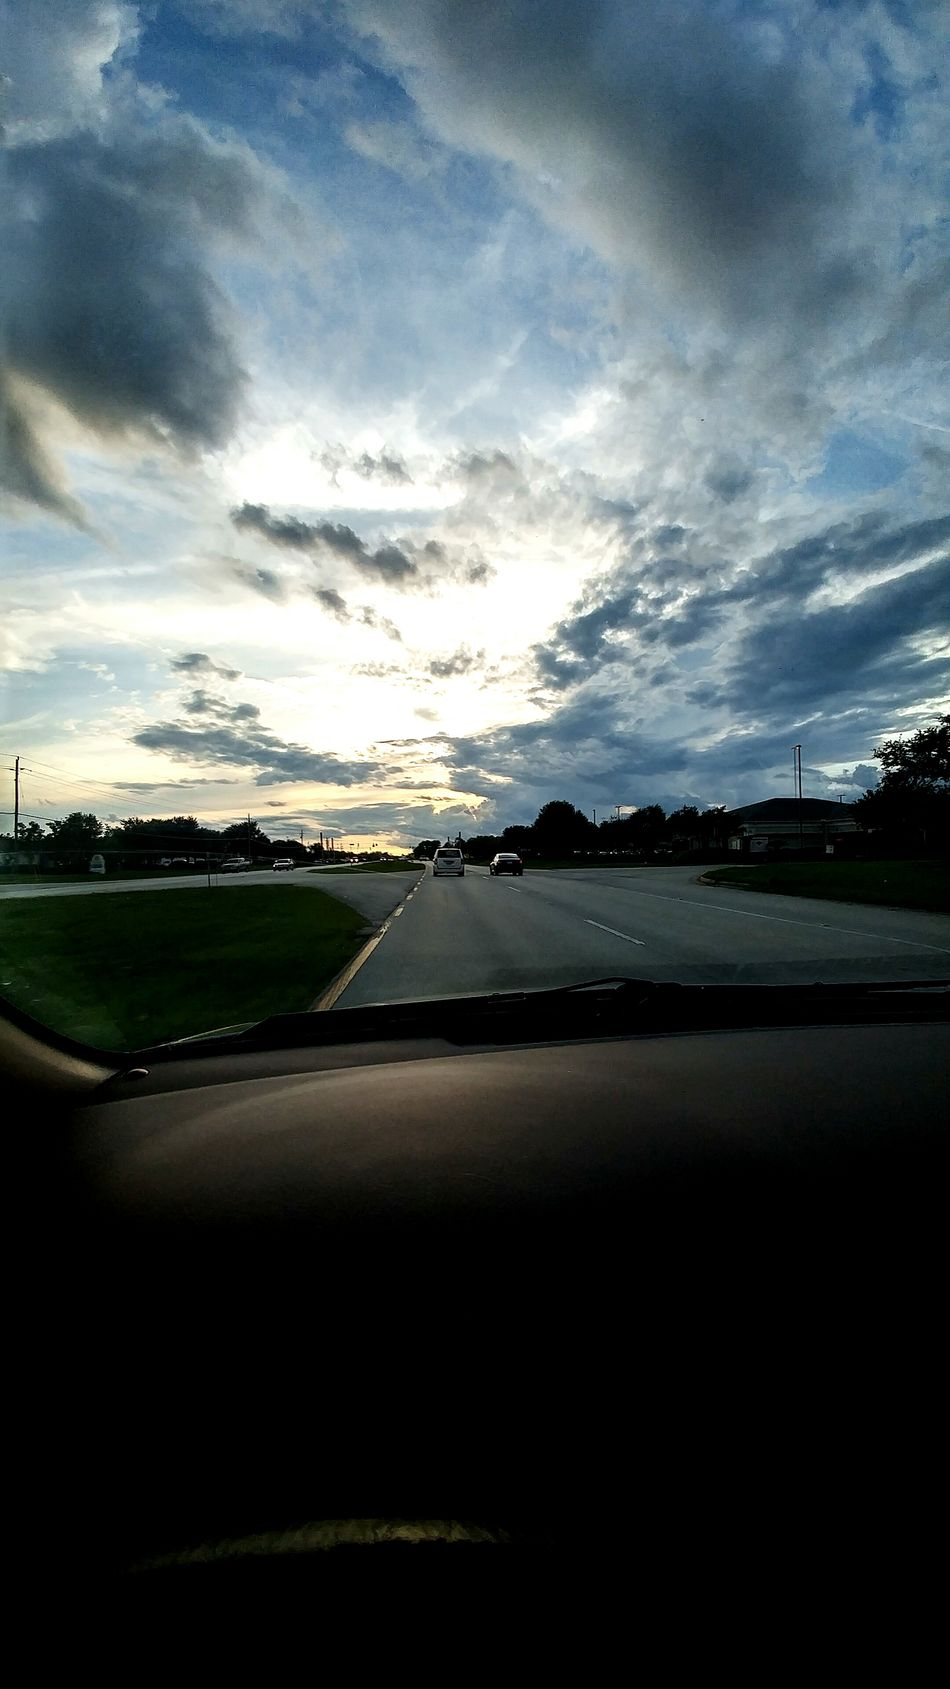 Sky Cloud - Sky Beauty In Nature Beautiful Taking Photos Photography Florida Jacksonville Eyeemphoto Perfection Clouds And Sky Great View Happiness CarRides